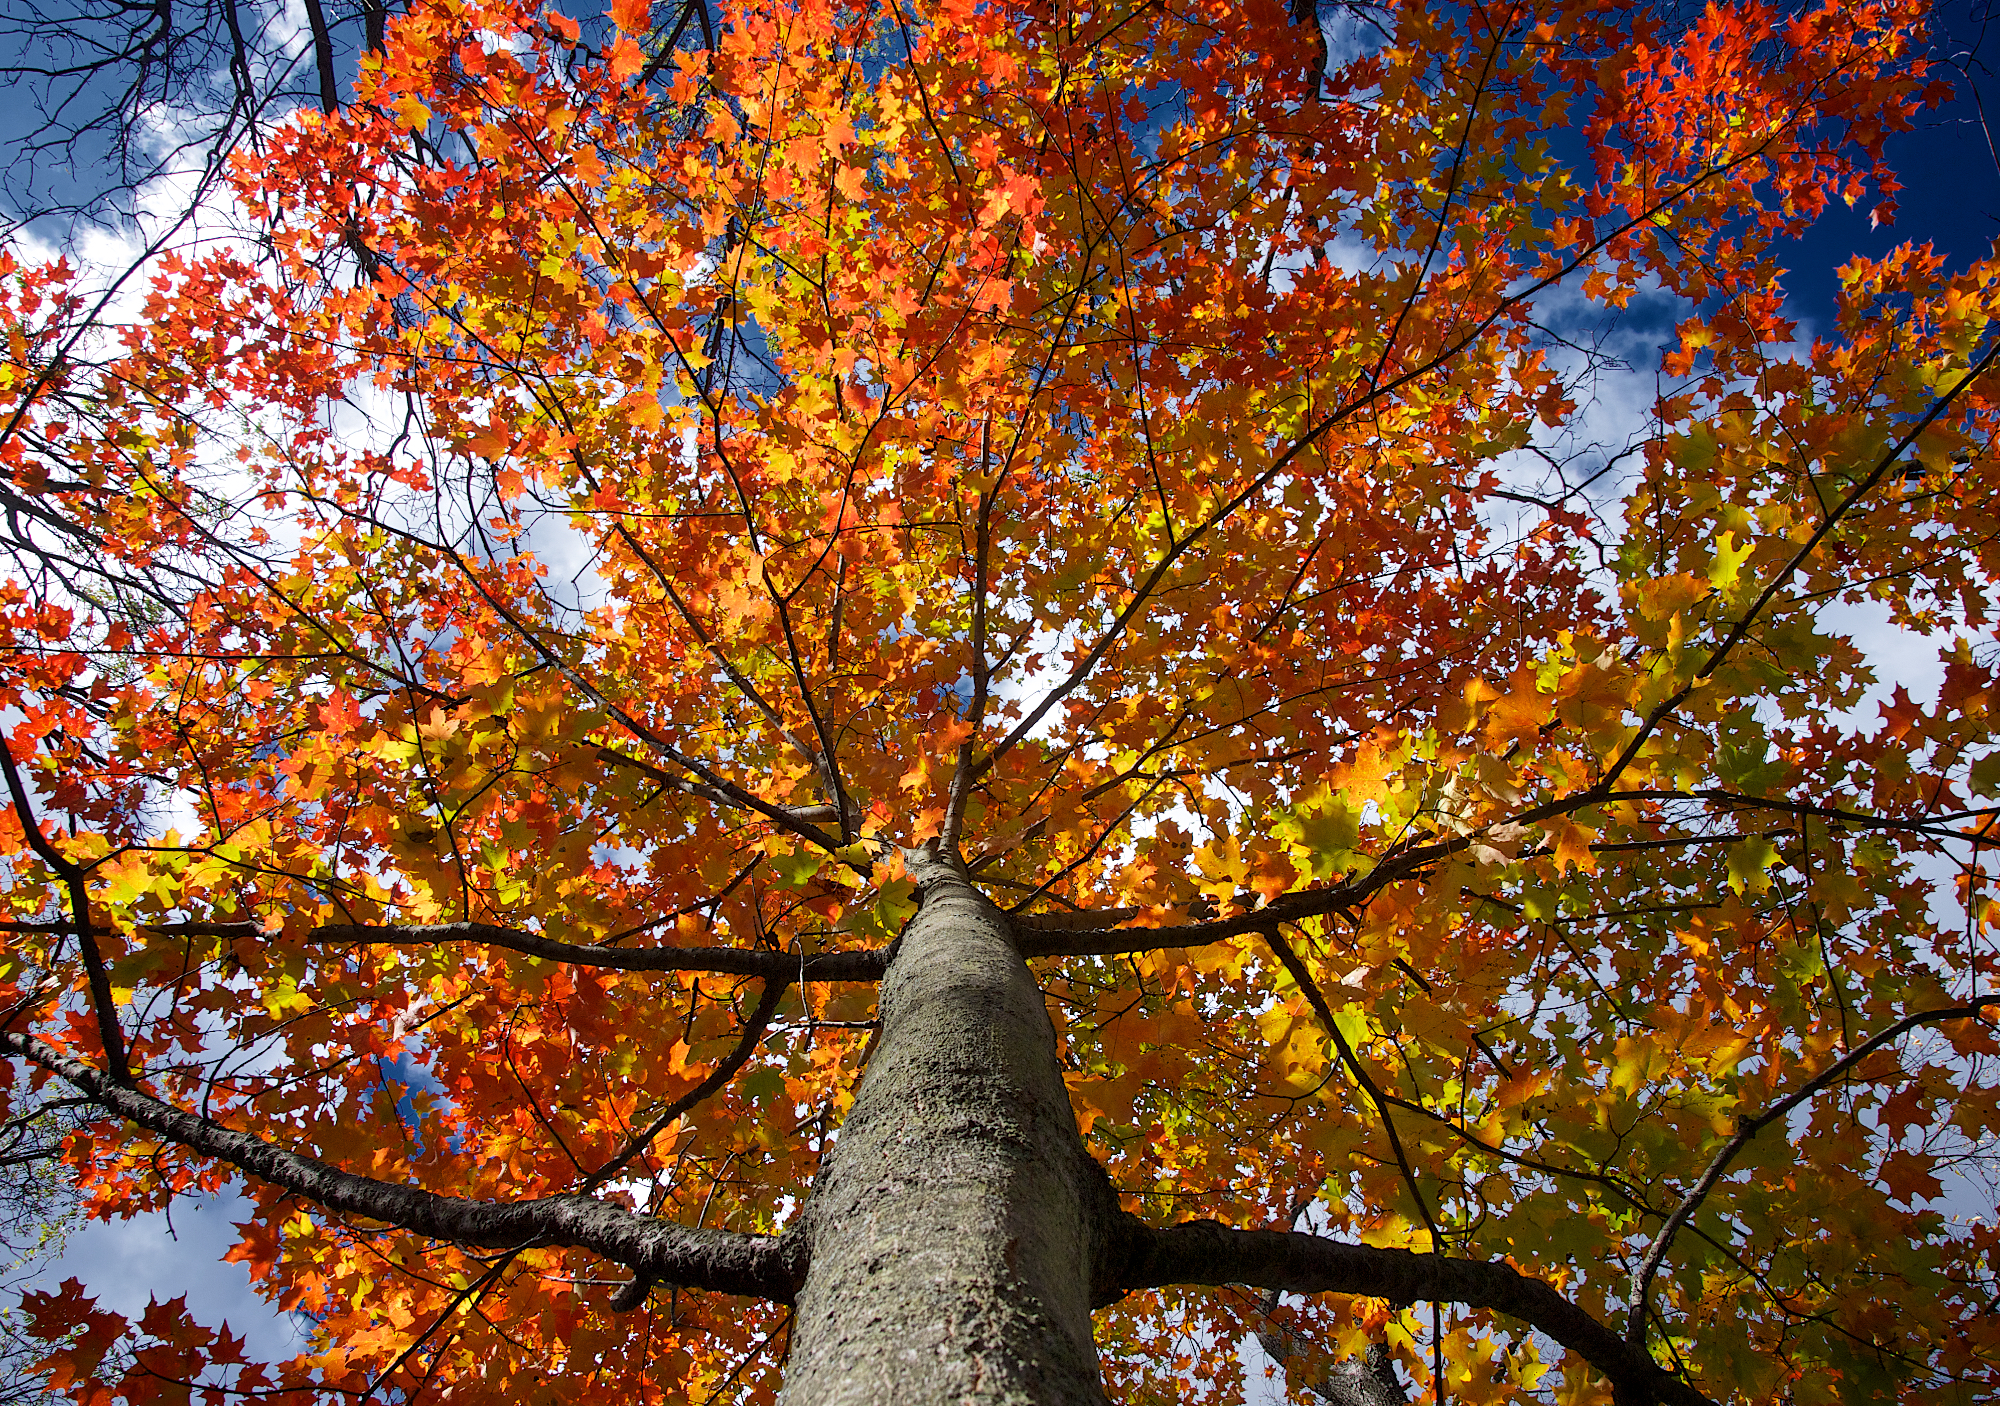 Autumn Falling Leaves Wallpaper Fiery Fall Foliage At Fenner Michigan In Pictures